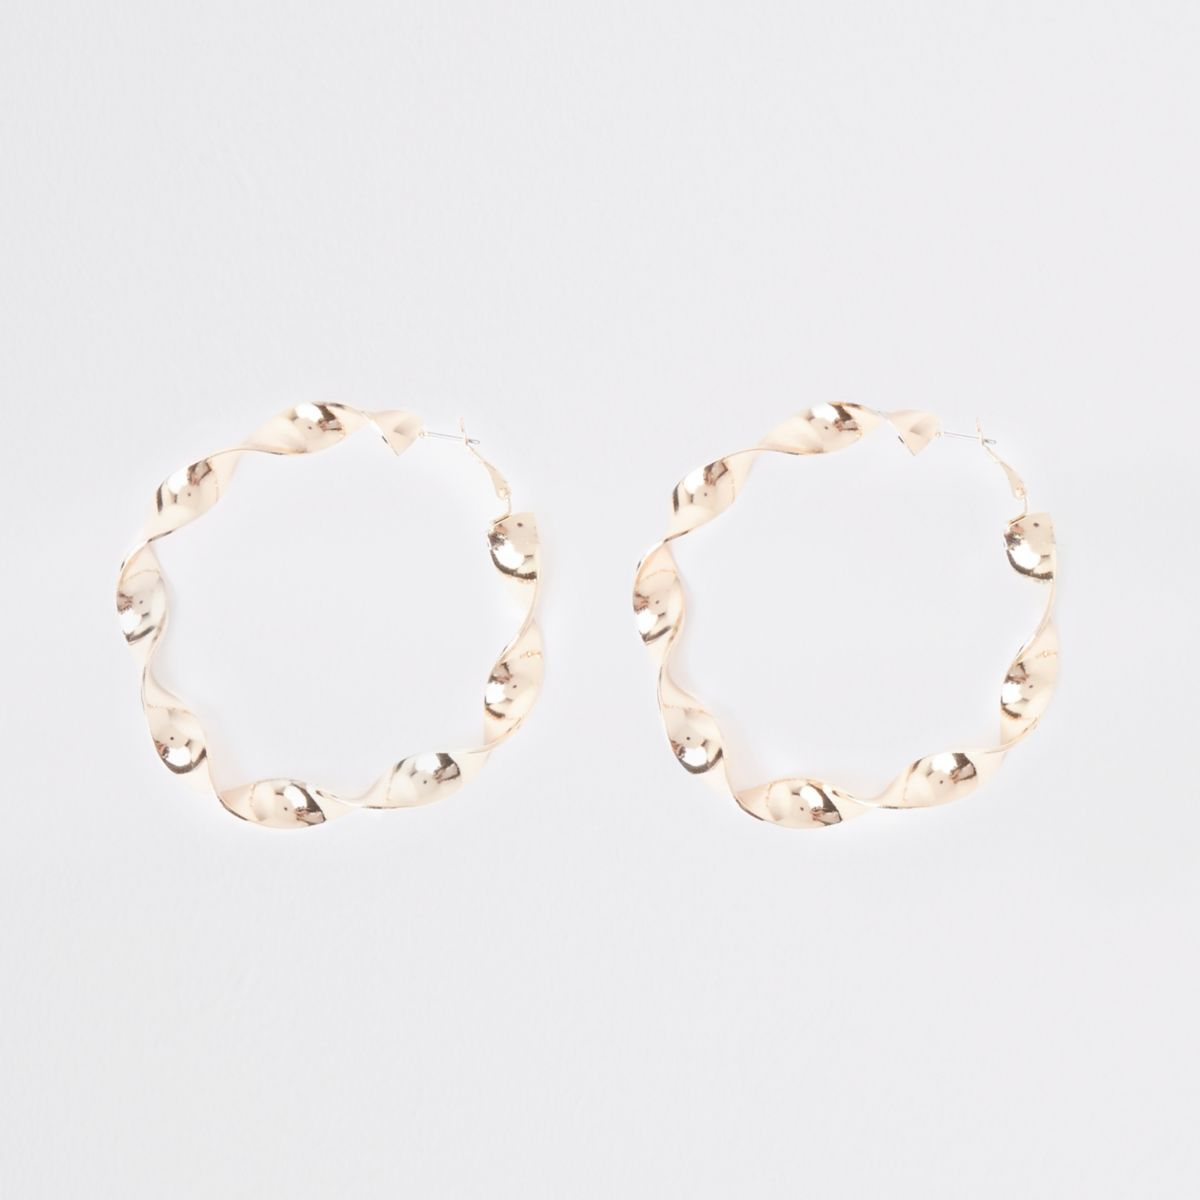 Gold tone retro twist hoop earrings